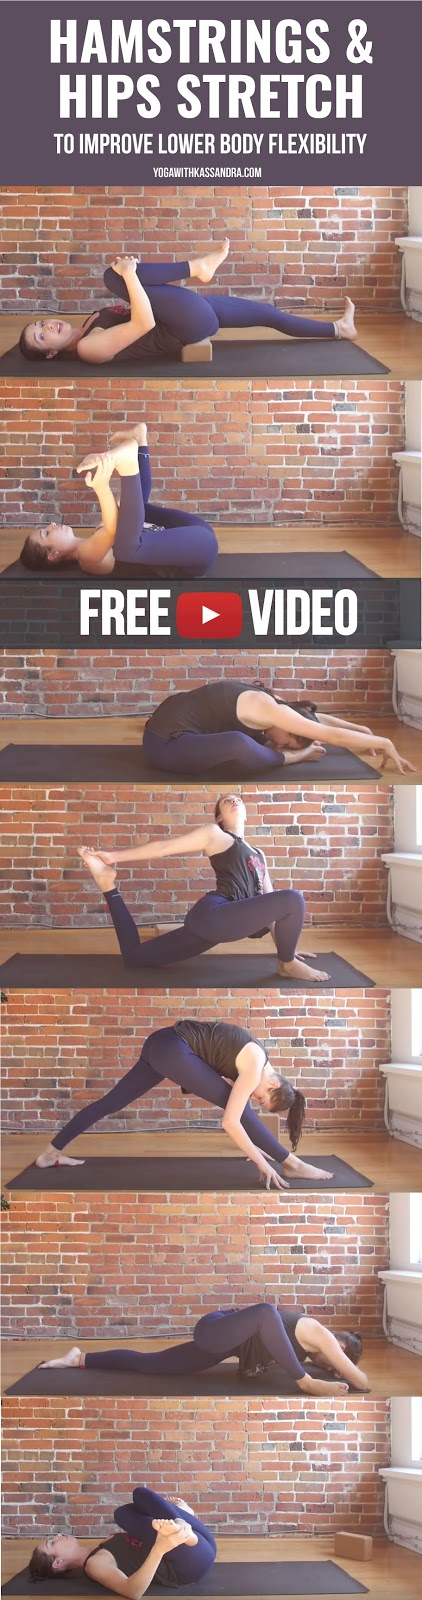 If you are wanting to work on your lower body flexibility, this is a great short sequence you can do at home everyday. It is actually the low body stretch I do on my mat most days. Great for when you are feeling stiff and sore as well, perhaps after a big workout.